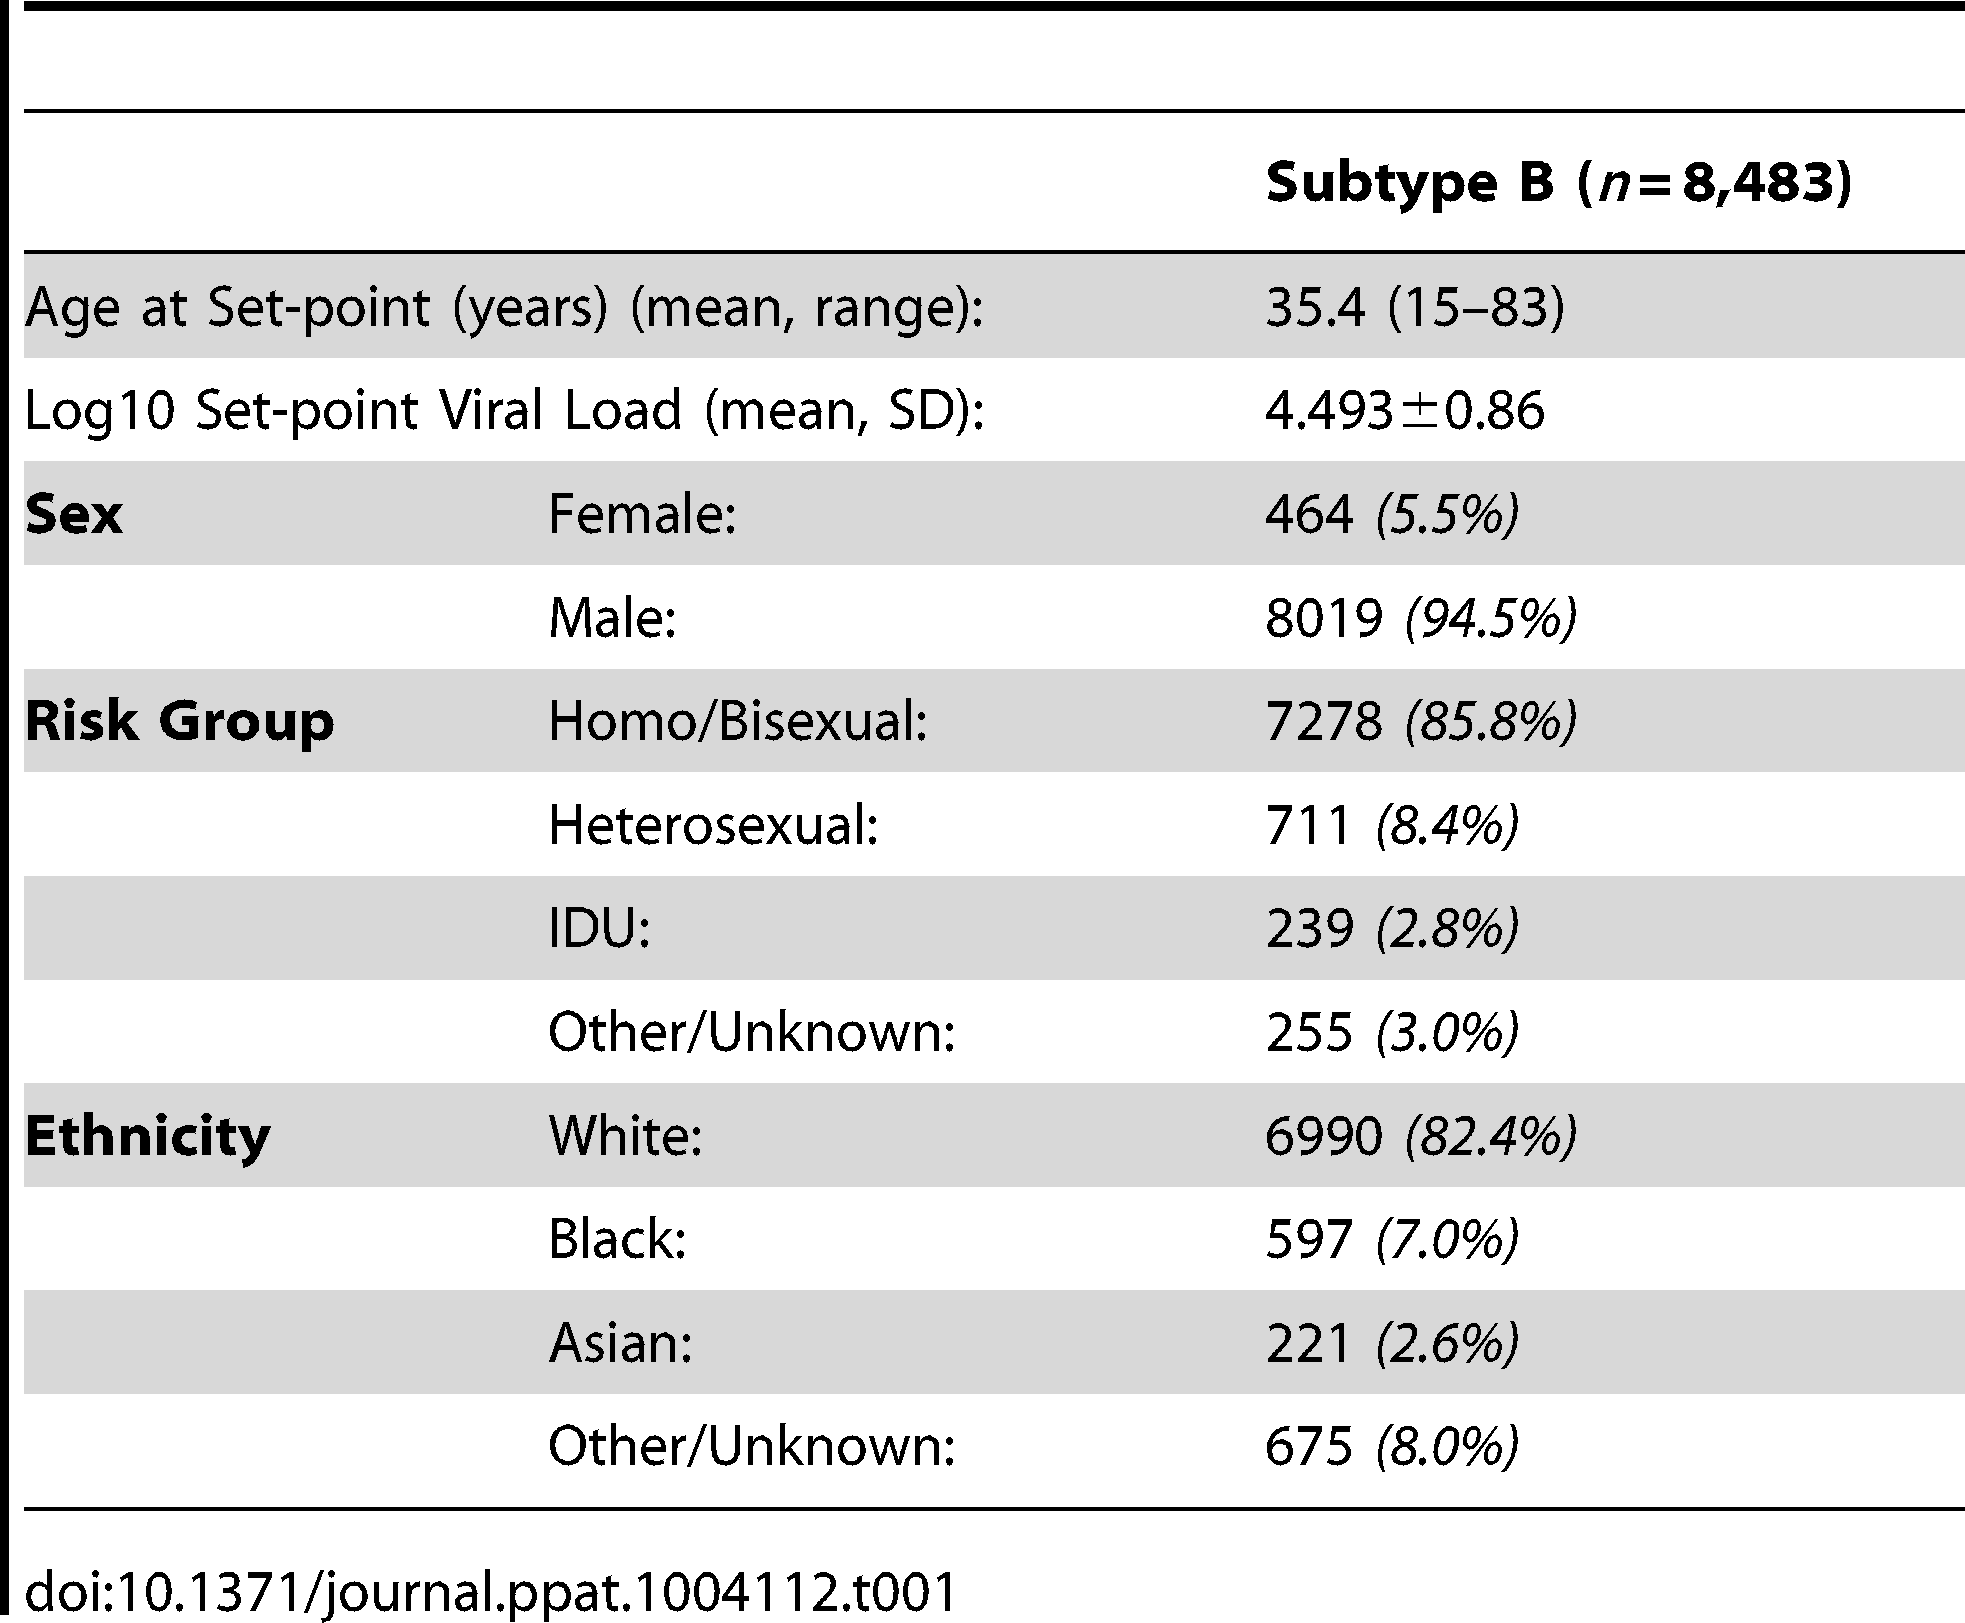 Demographics of patients whose samples were analyzed.